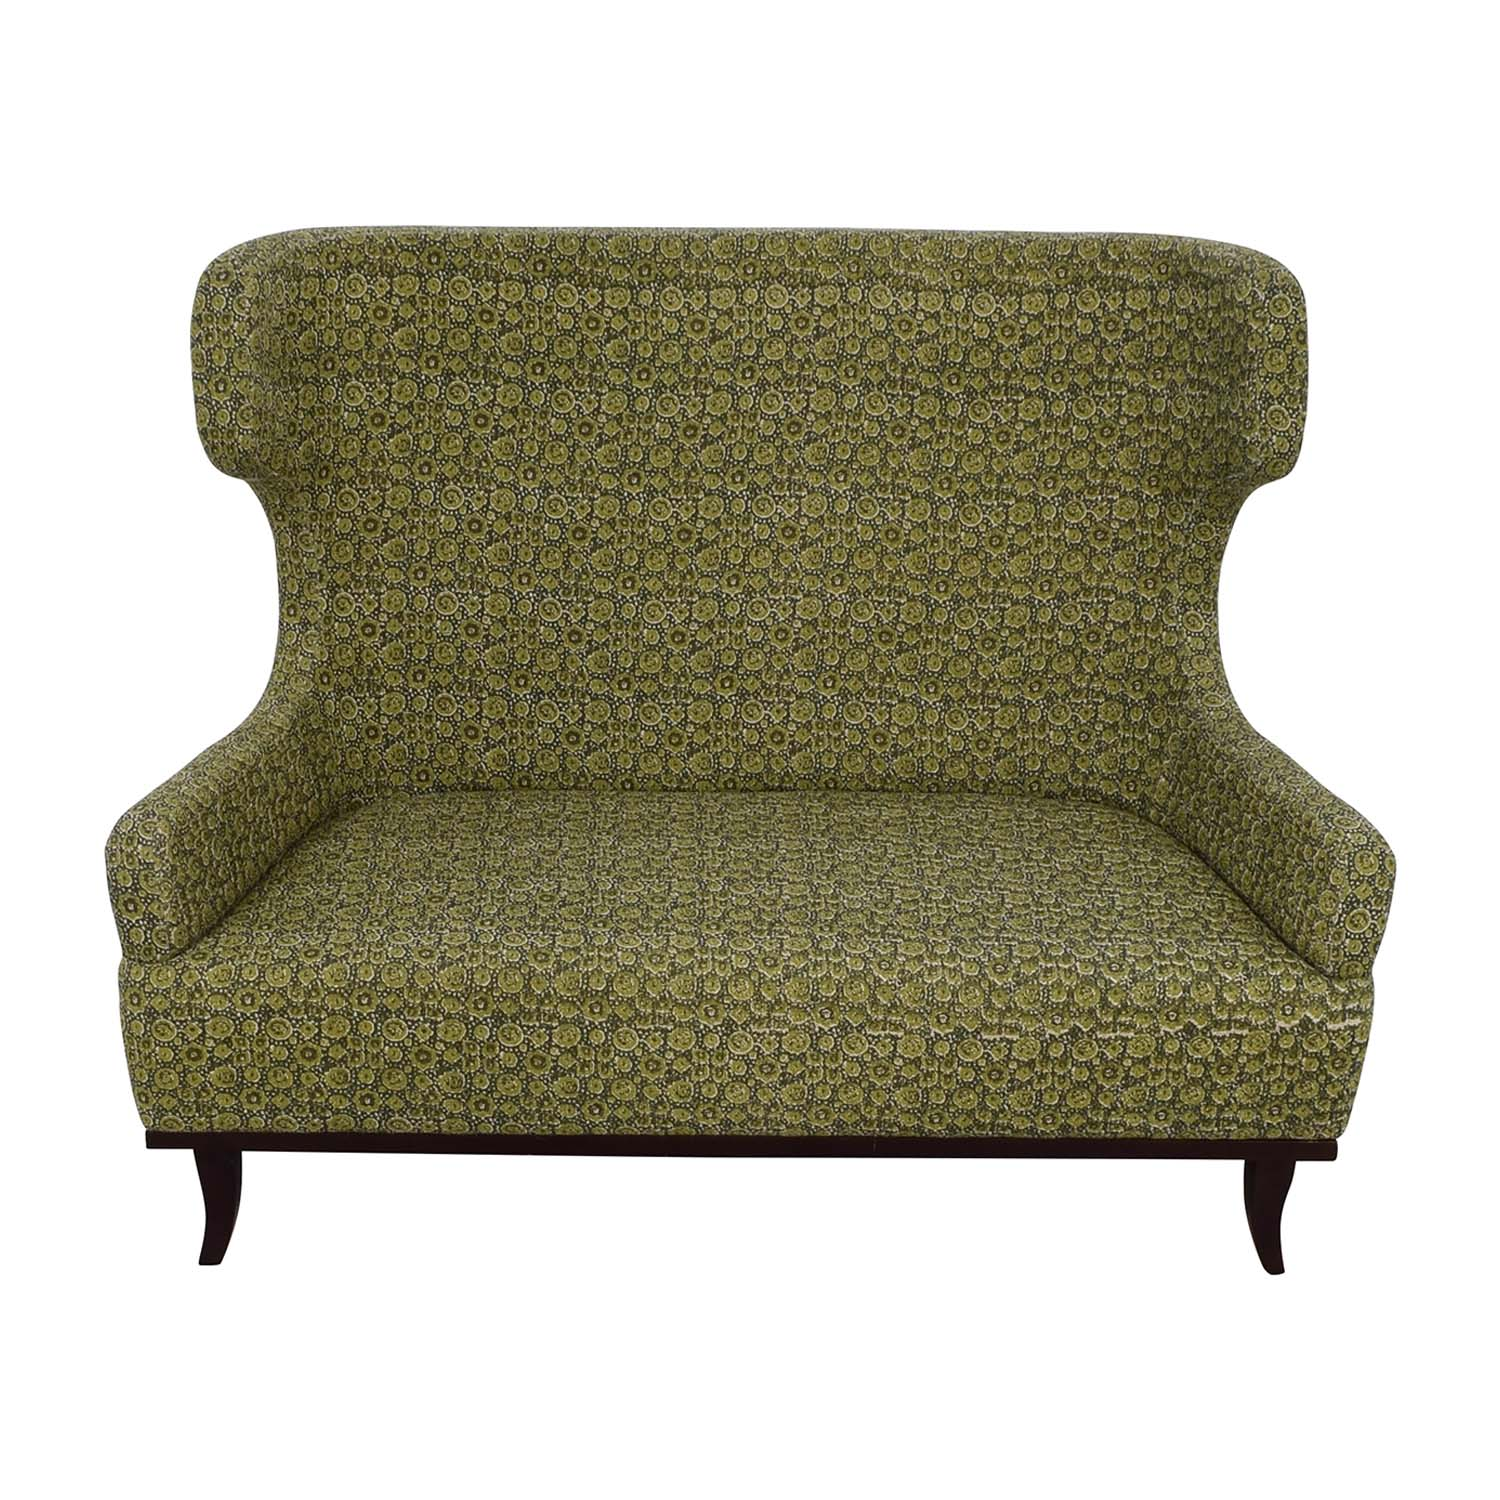 Manor and Mews Manor and Mews James Multi Green Patterned Settee Loveseats